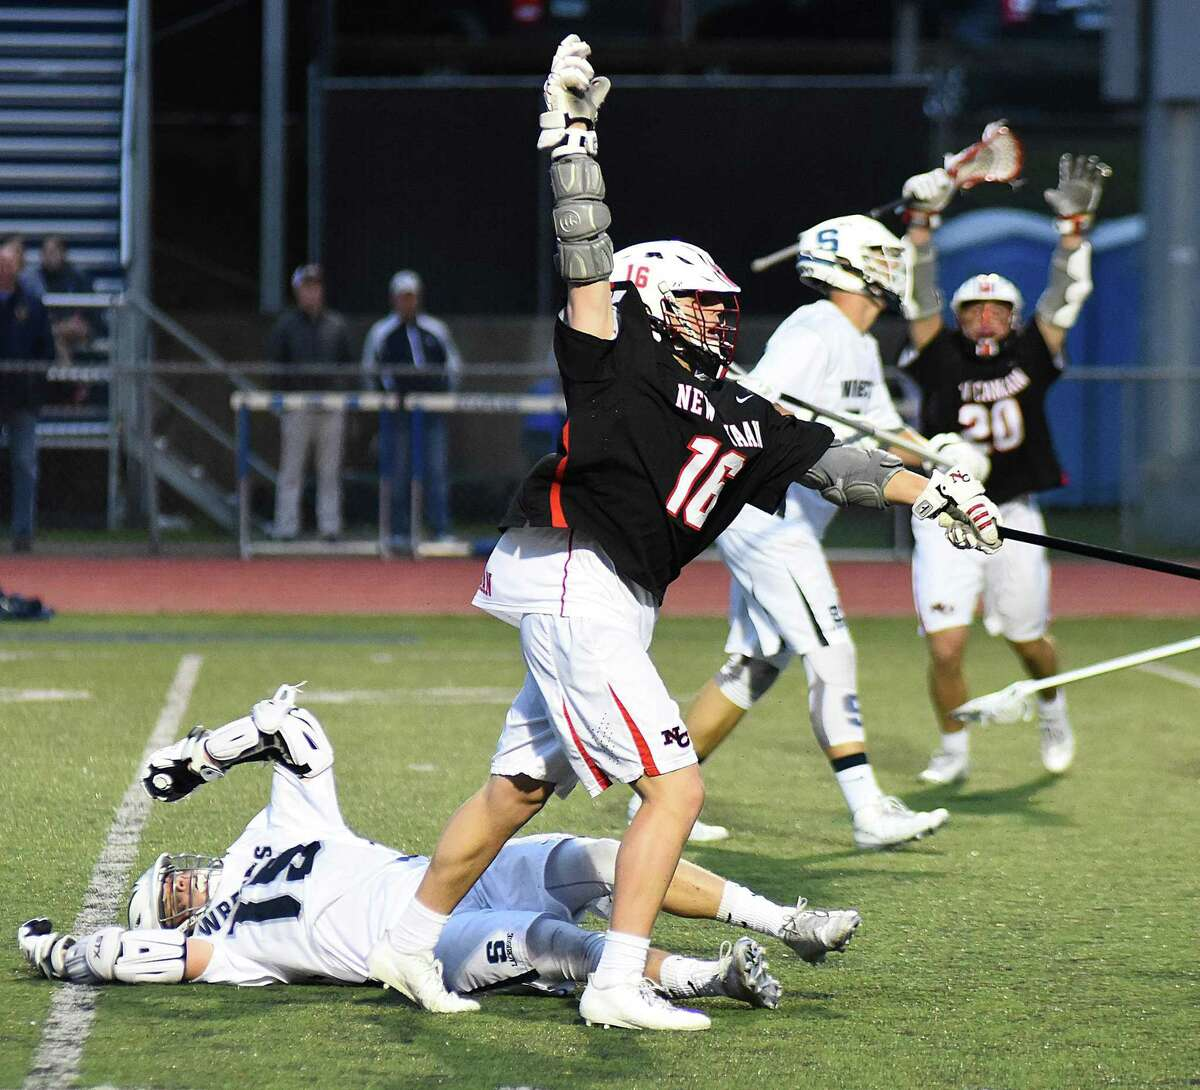 New Canaan's Graham Braden, center, reacts after scoring the game-winning goal with four seconds left in the second overtime during the Rams' 15-14 FCIAC boys lacrosse win over Staples in Westport on Wednesday night.